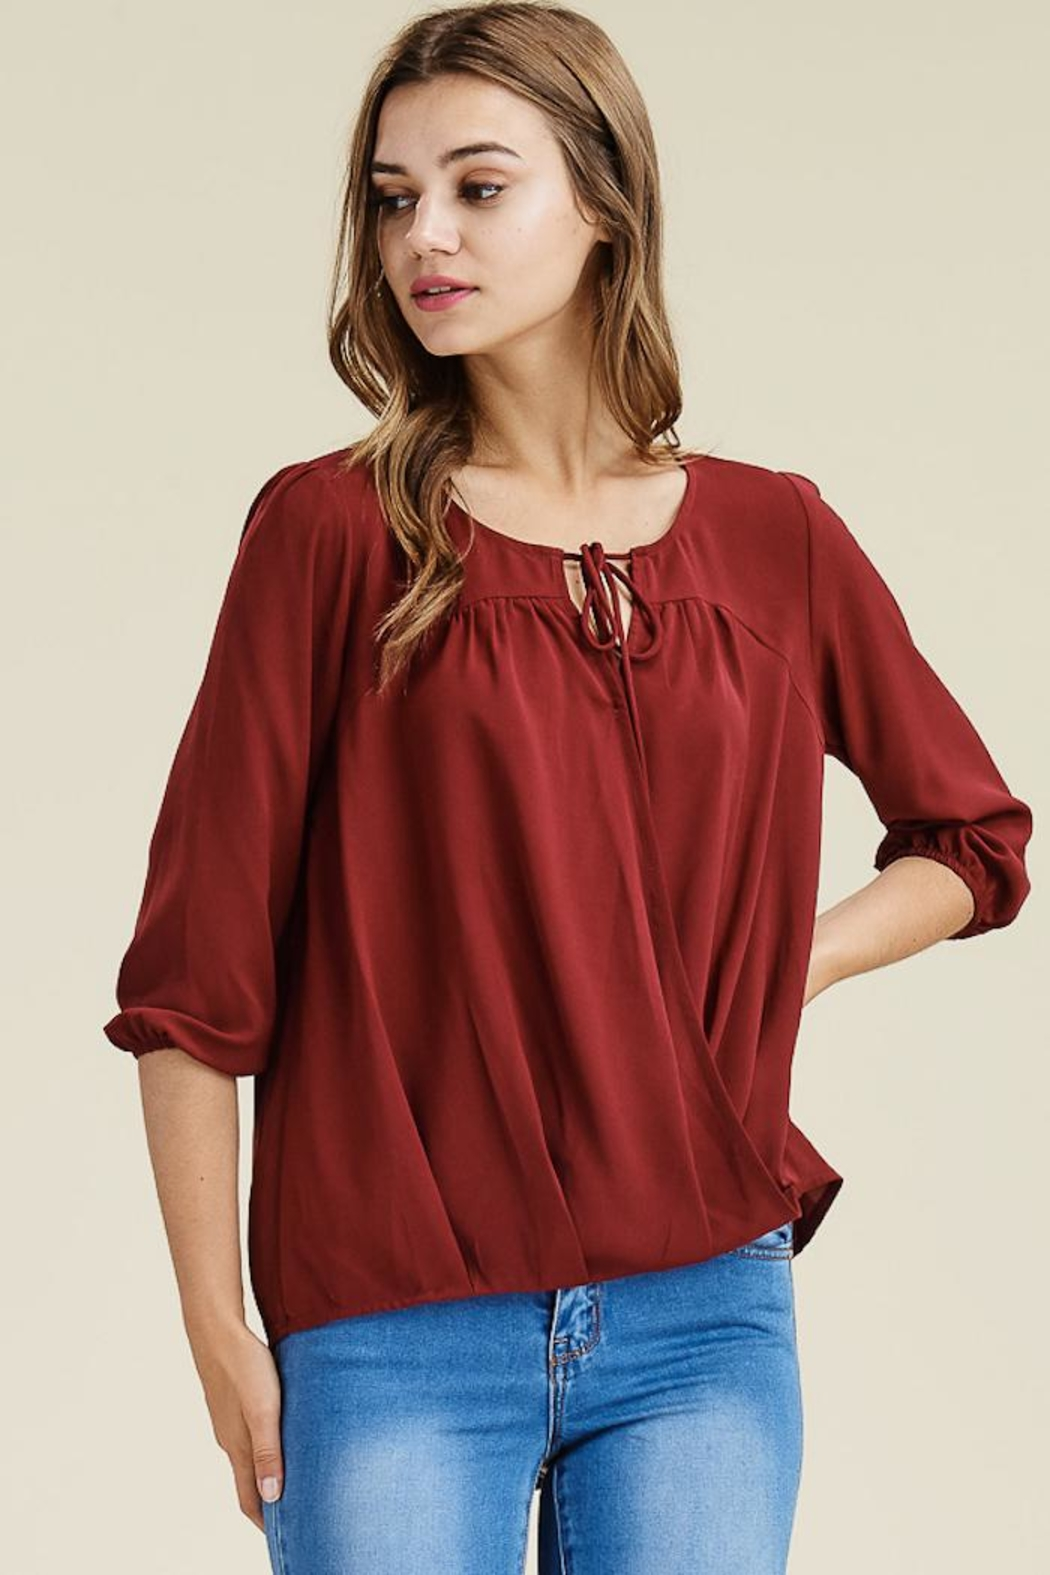 Staccato Burgundy Cross Top - Main Image